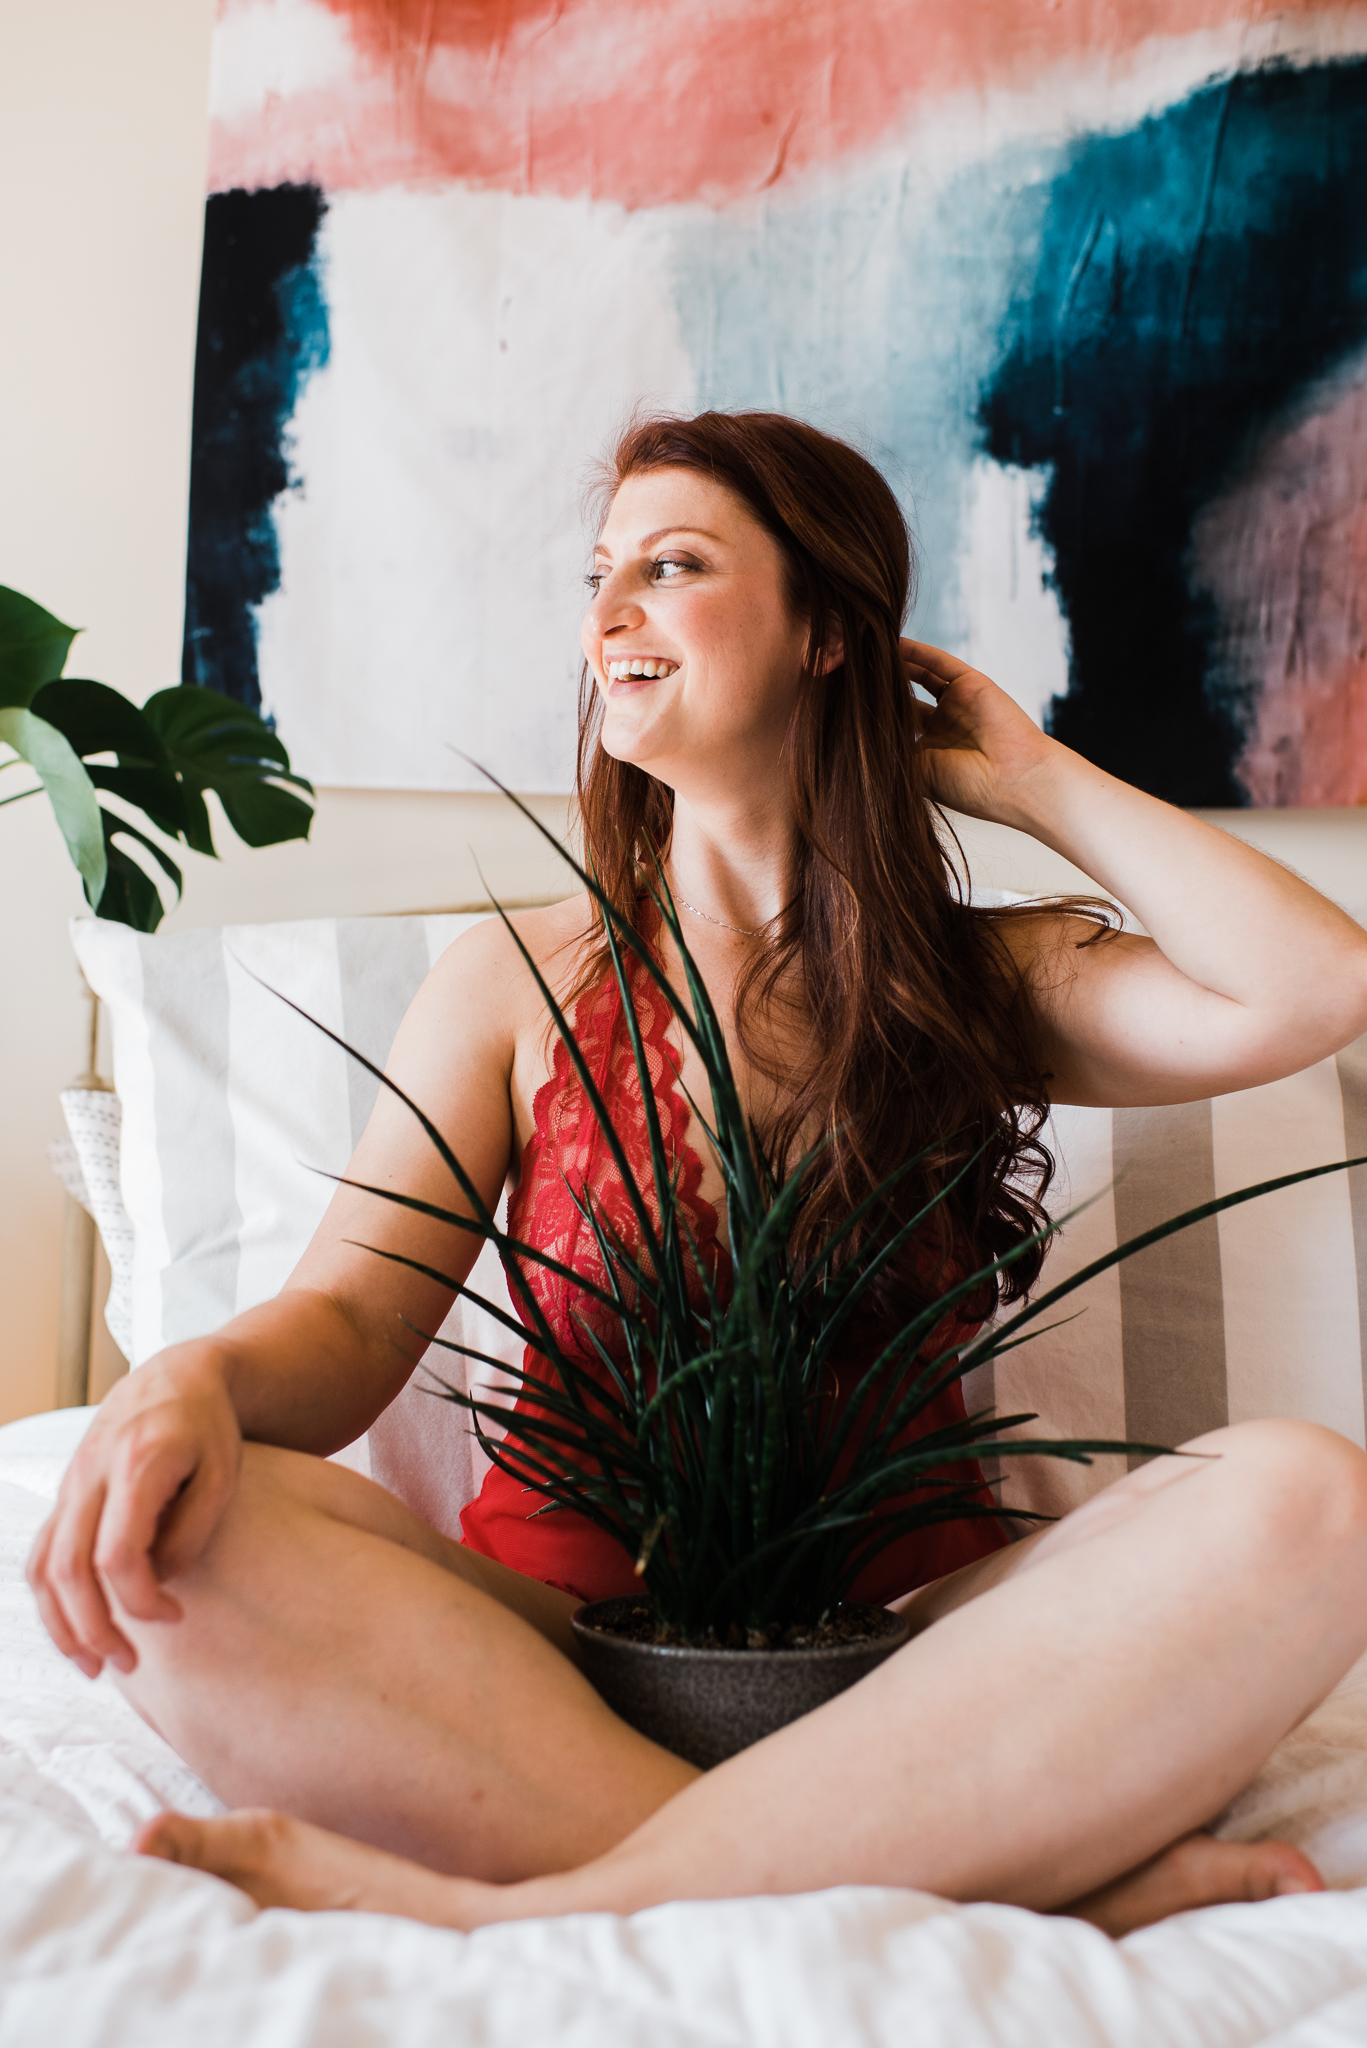 Easterday Creative | Photographer and visual storyteller for rad humans and unique brands | Boudoir and empowerment photography